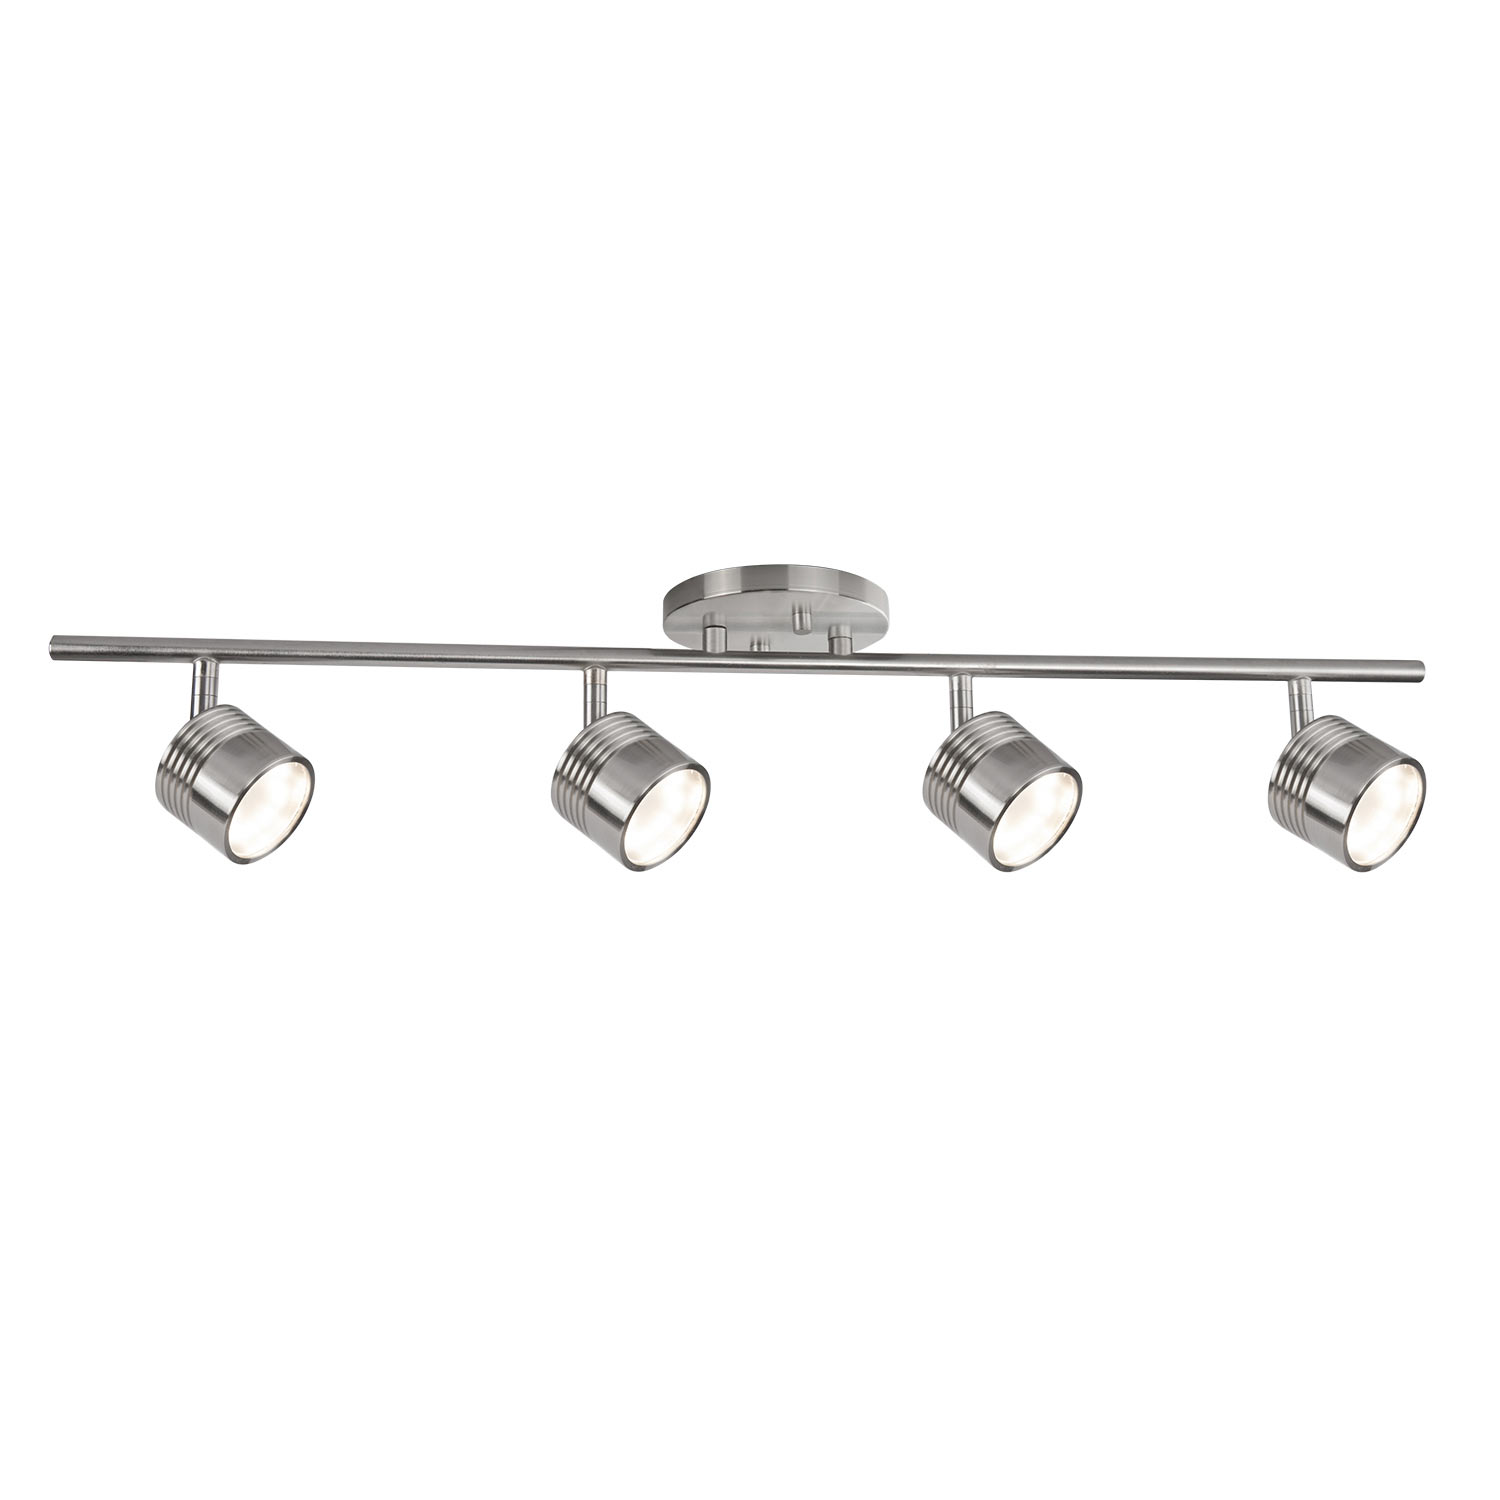 Led fixed track fixture tr10031 mozeypictures Image collections